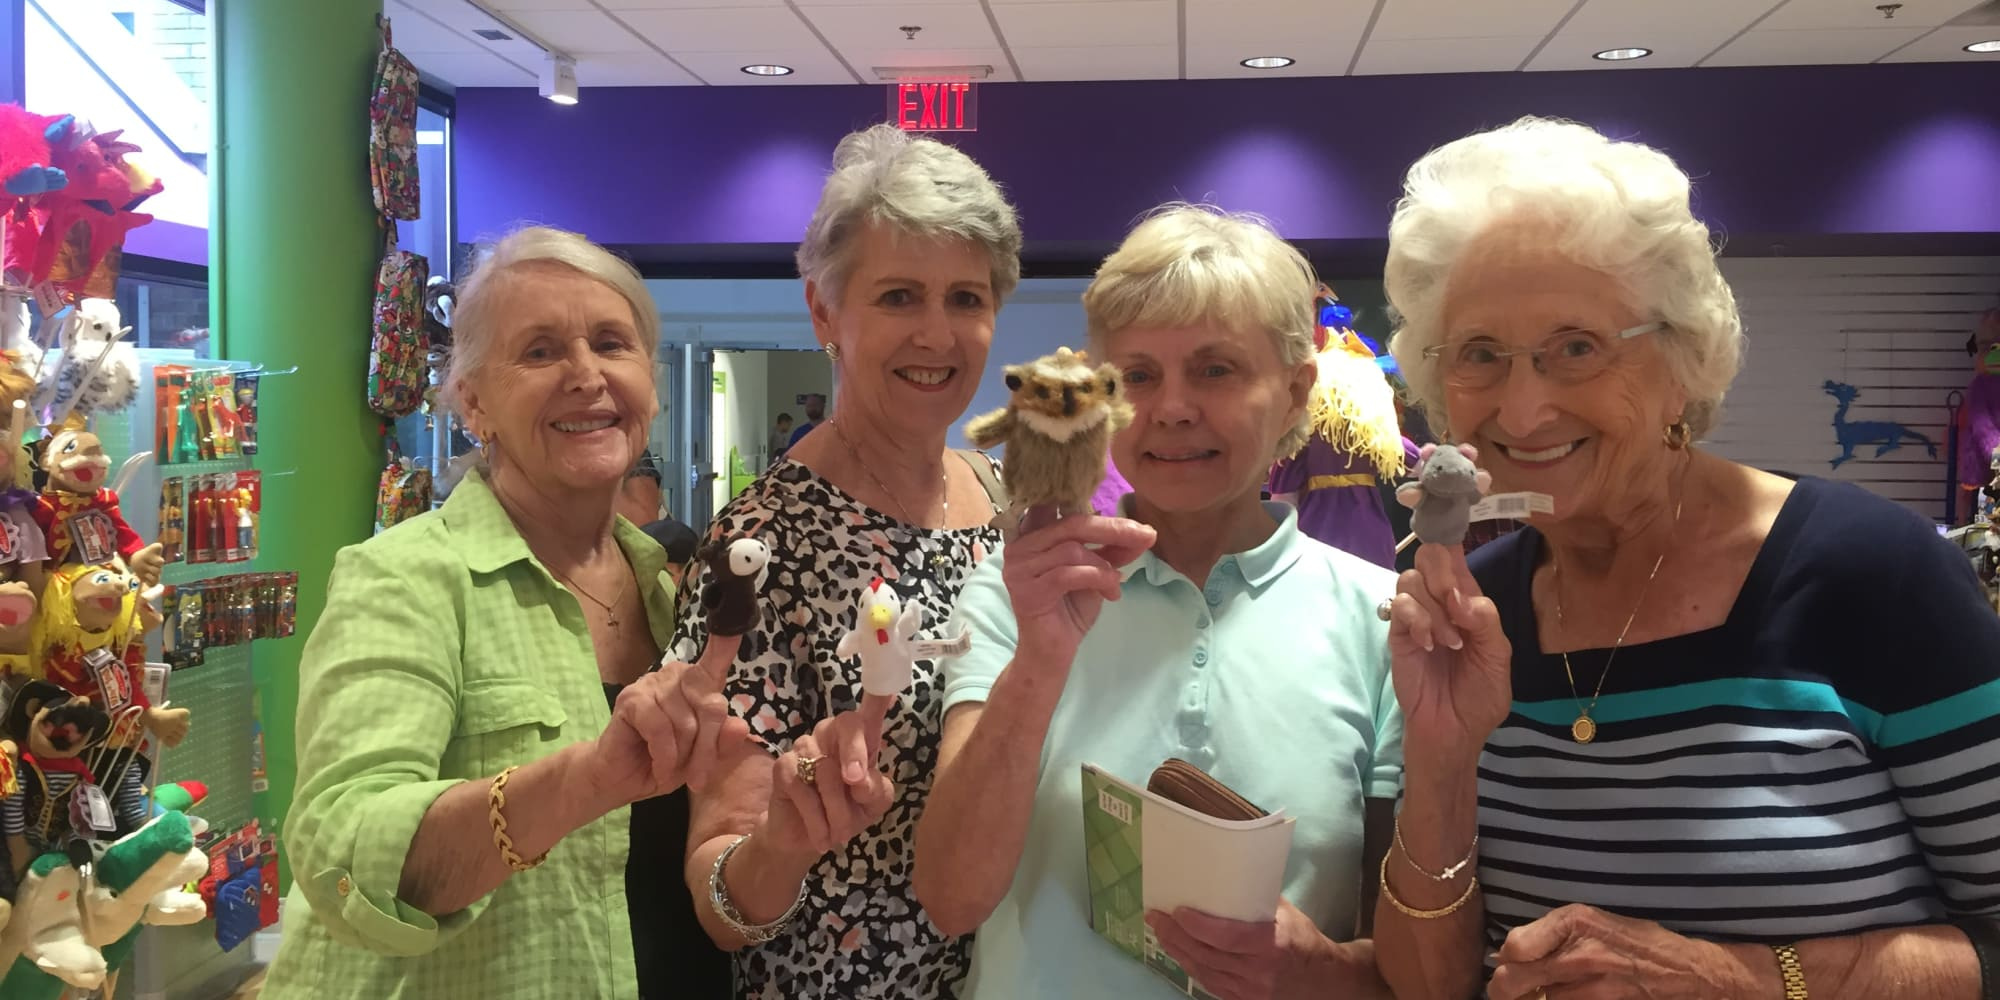 Residents from Pioneer Ridge Gracious Retirement Living in McKinney, Texas with finger puppets in a store